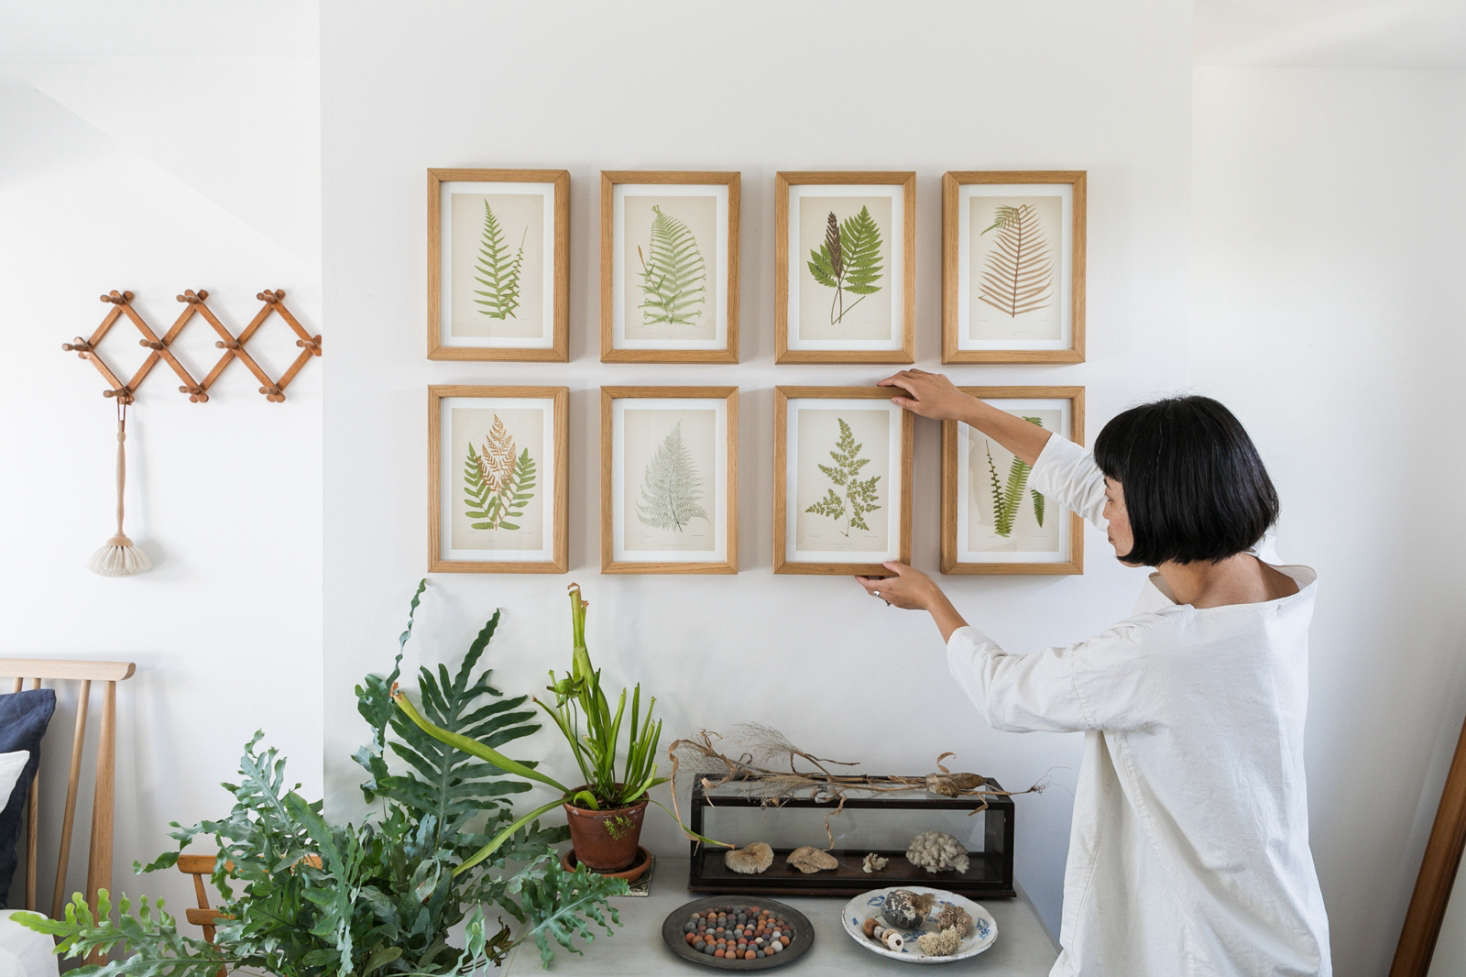 The power of symmetry fern leaves in simple wooden frames impose order on a botanical